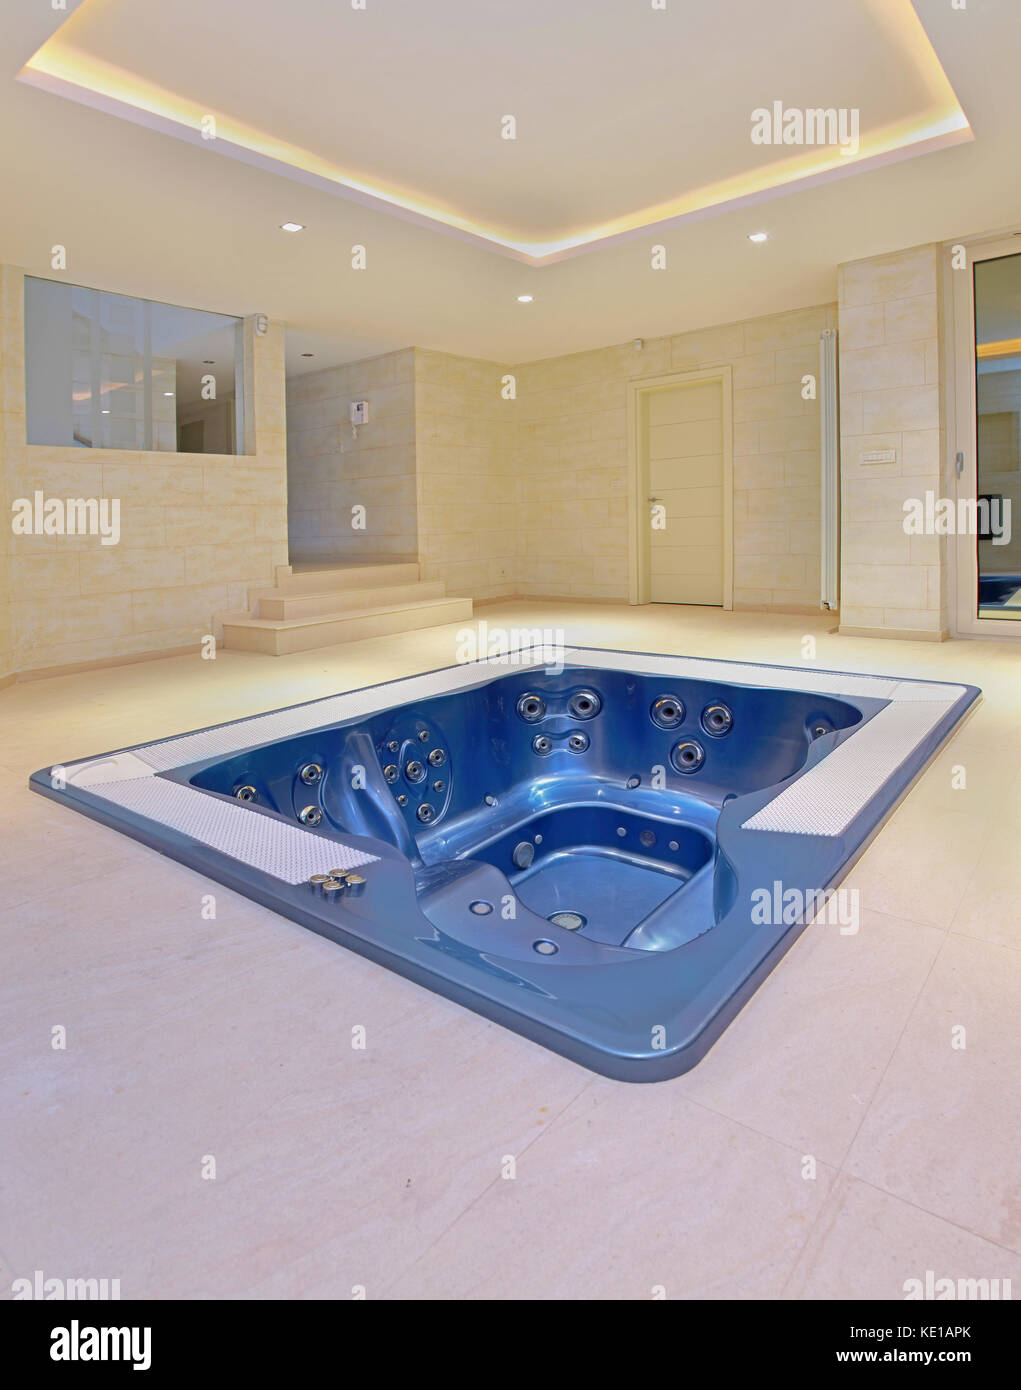 Empty Hot Tub Stock Photos & Empty Hot Tub Stock Images - Alamy